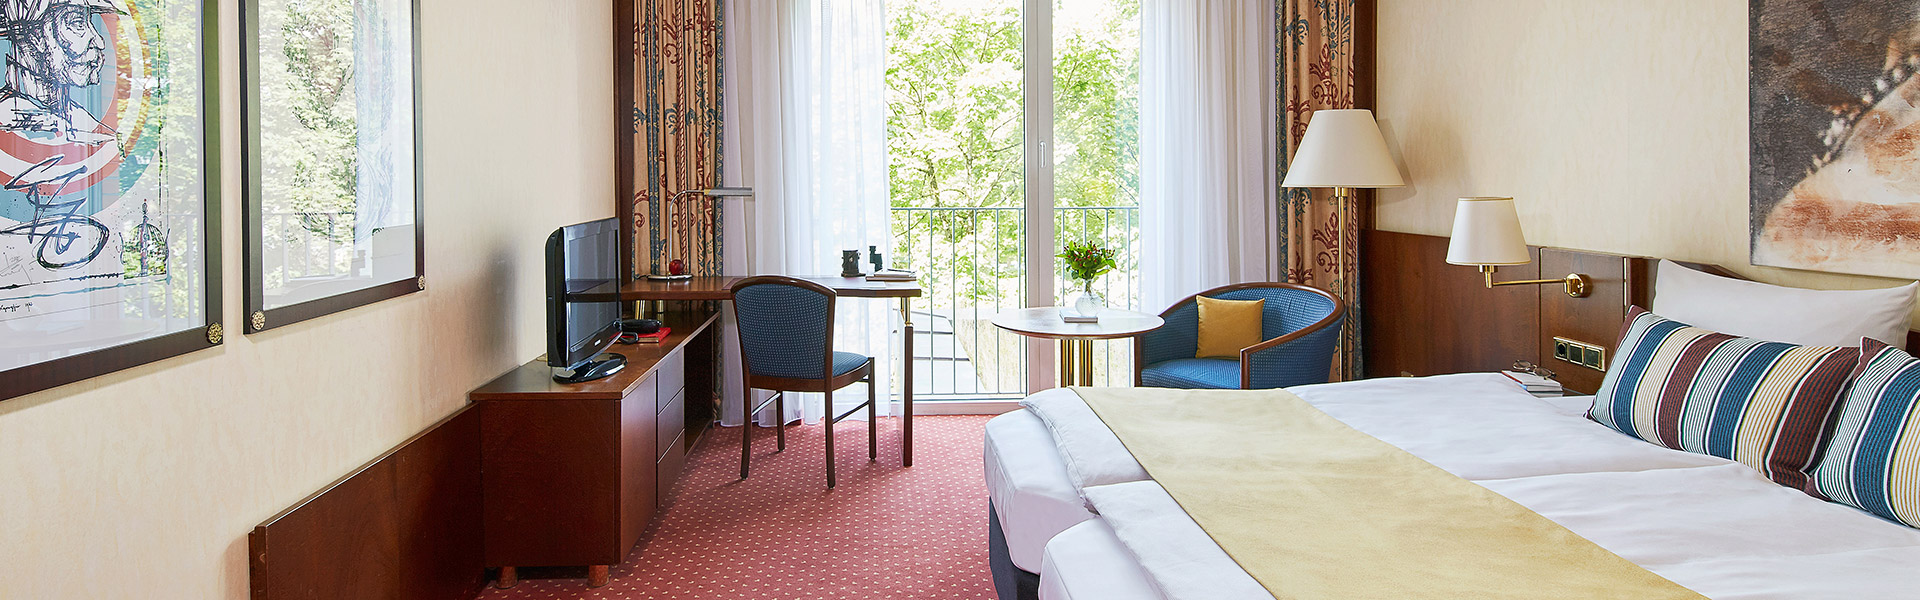 Living Hotel Prinzessin Elisabeth Muenchen Apartments